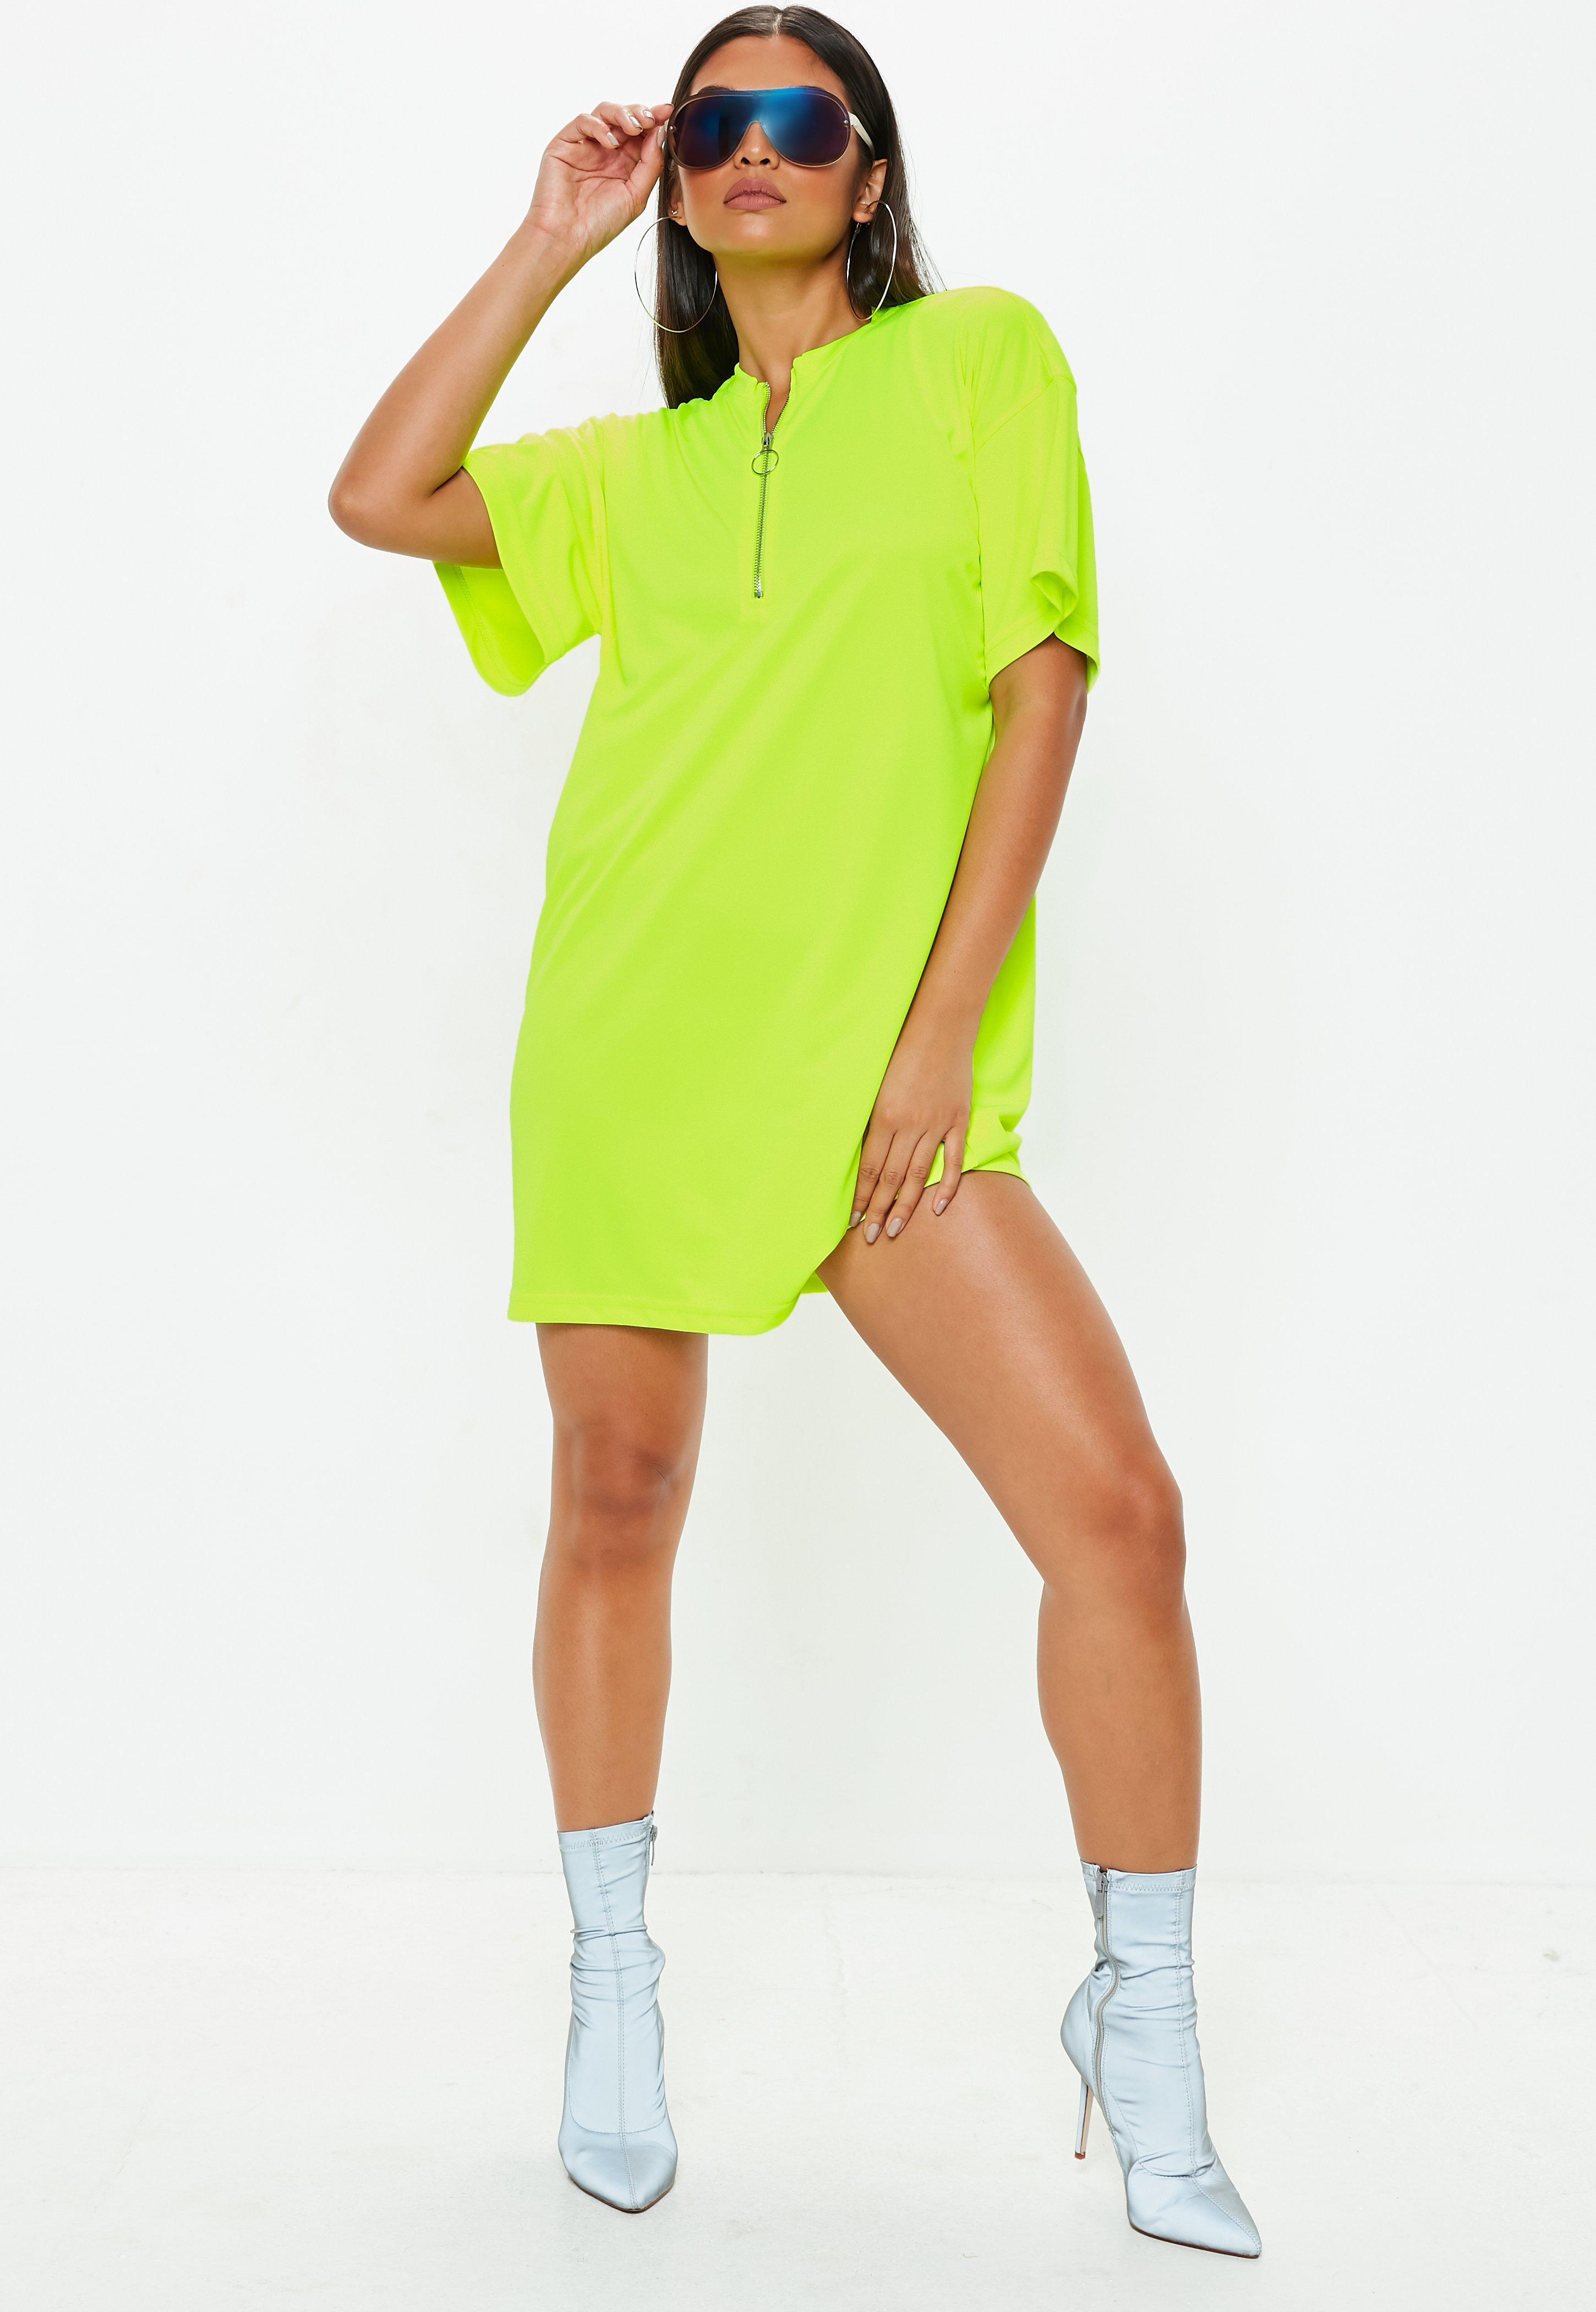 12d0a7c36047 Lyst - Missguided Neon Yellow Oversized Zip Front T-shirt Dress in ...